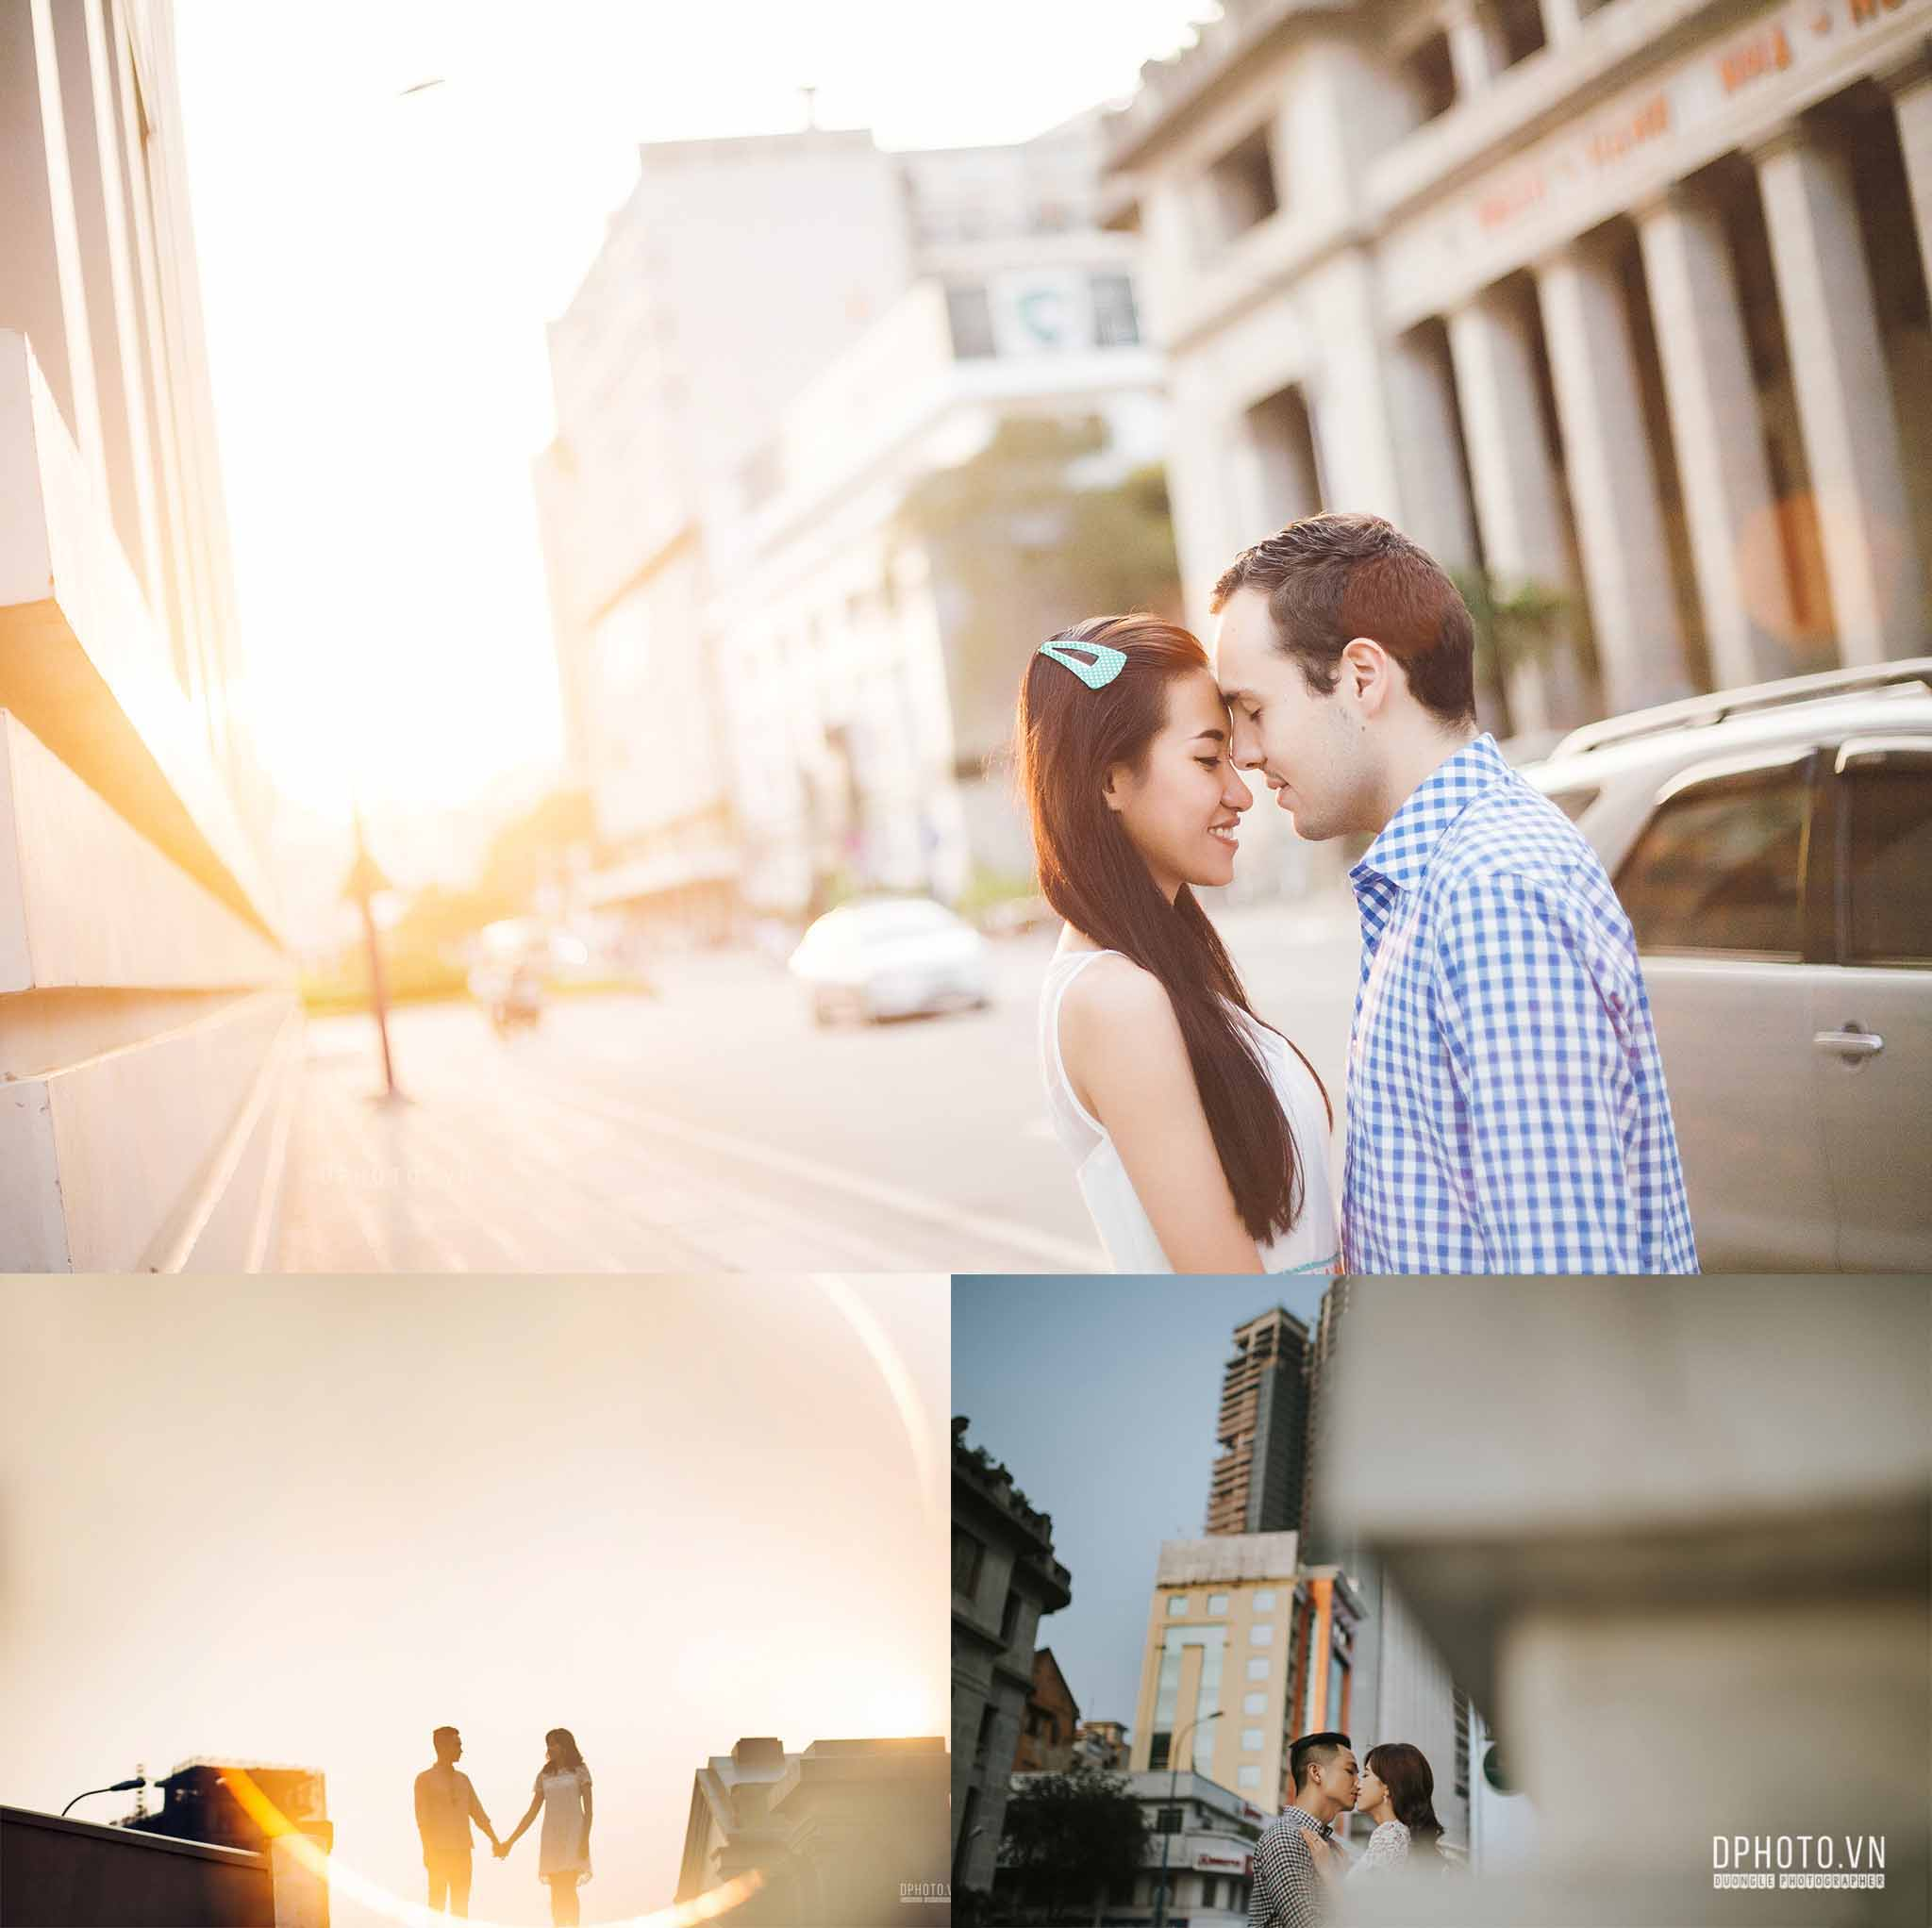 best-locations-for-engagement-pre-wedding-photography-in-saigon-ho-chi-minh-viet-nam